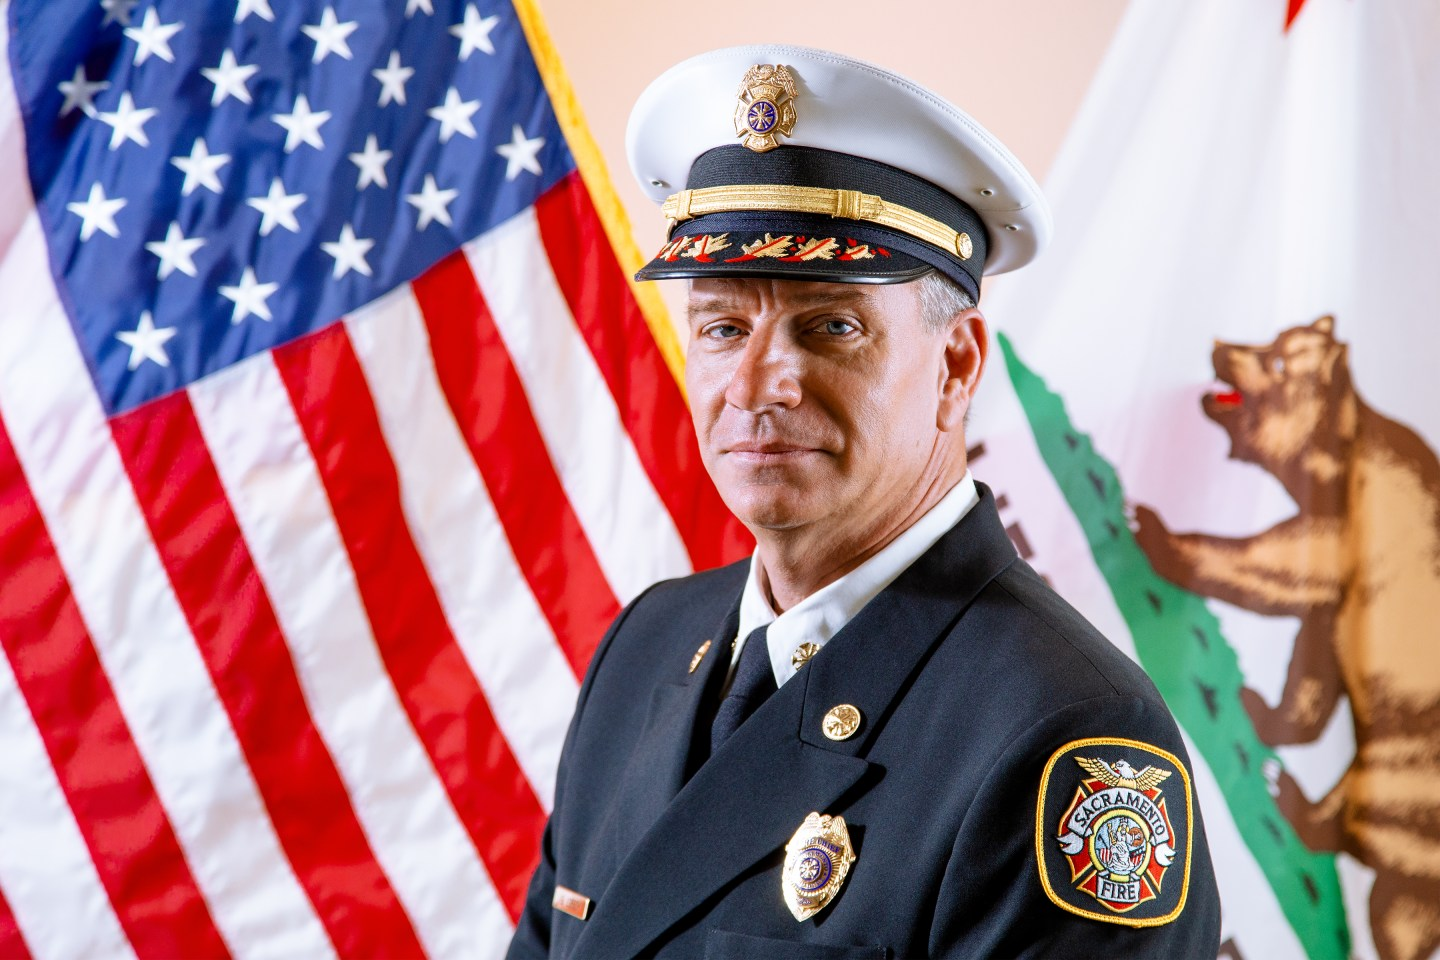 Chief Gary Loesch